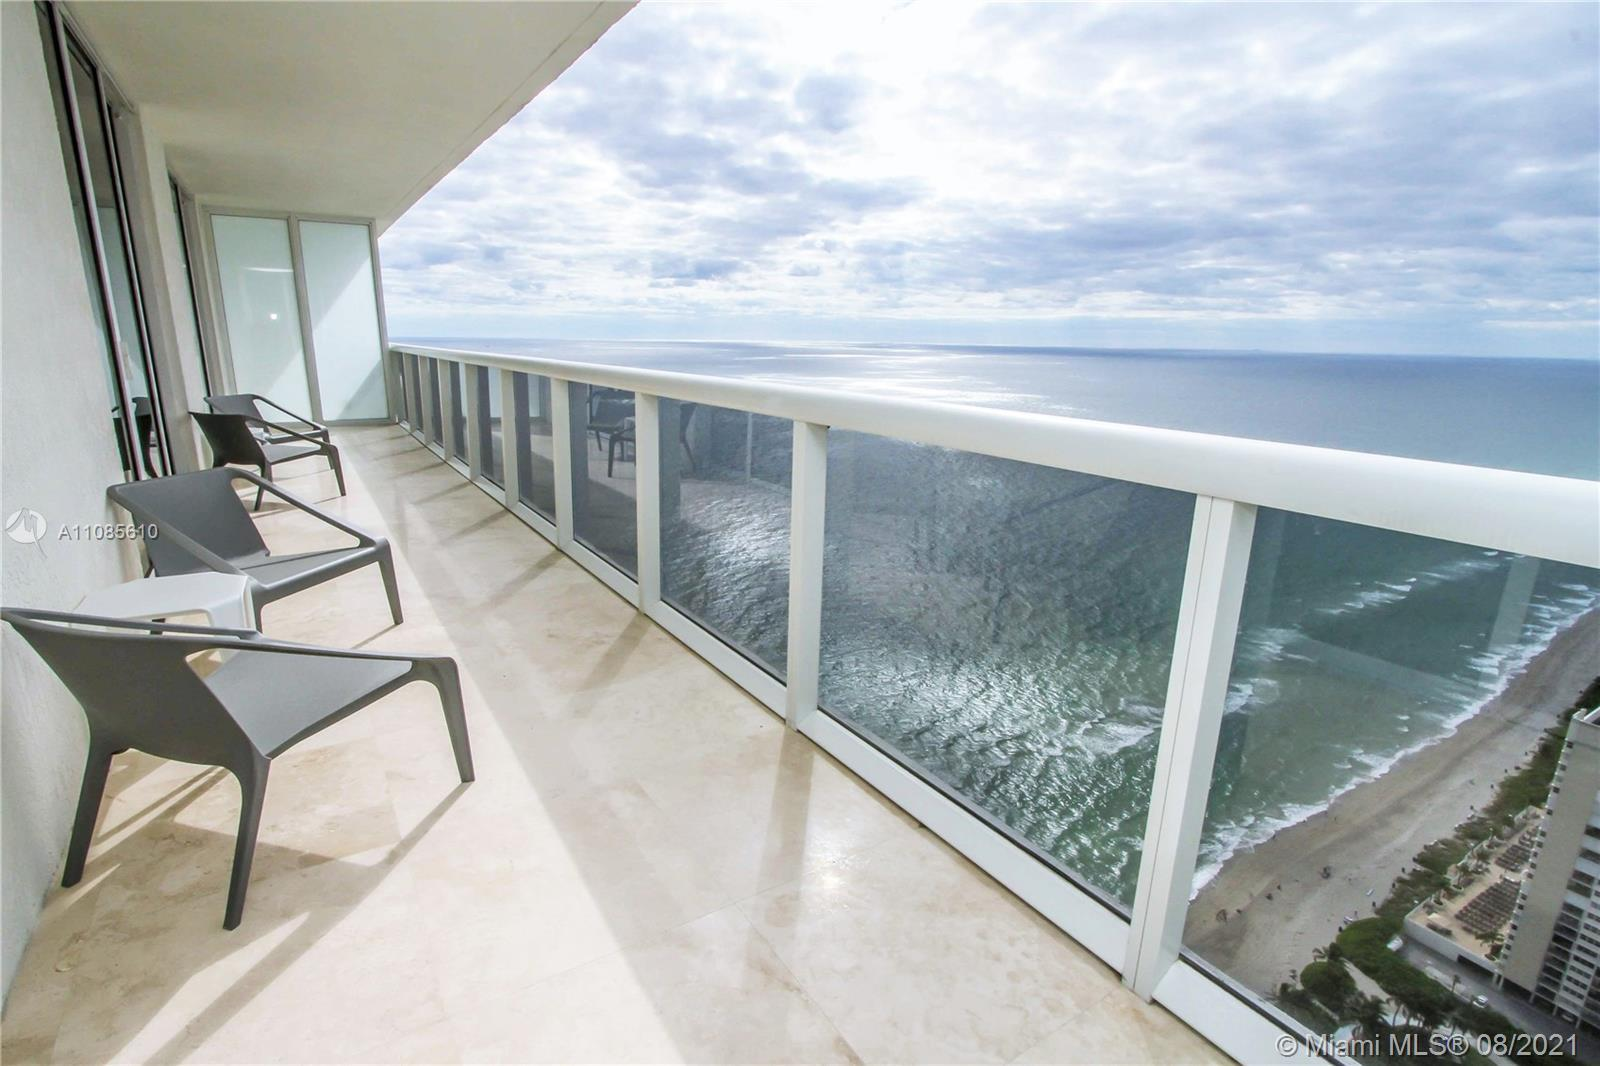 Prestige condo with Amazing views of the Ocean, City, and beyond from the 49th floor 294 SF balcony.